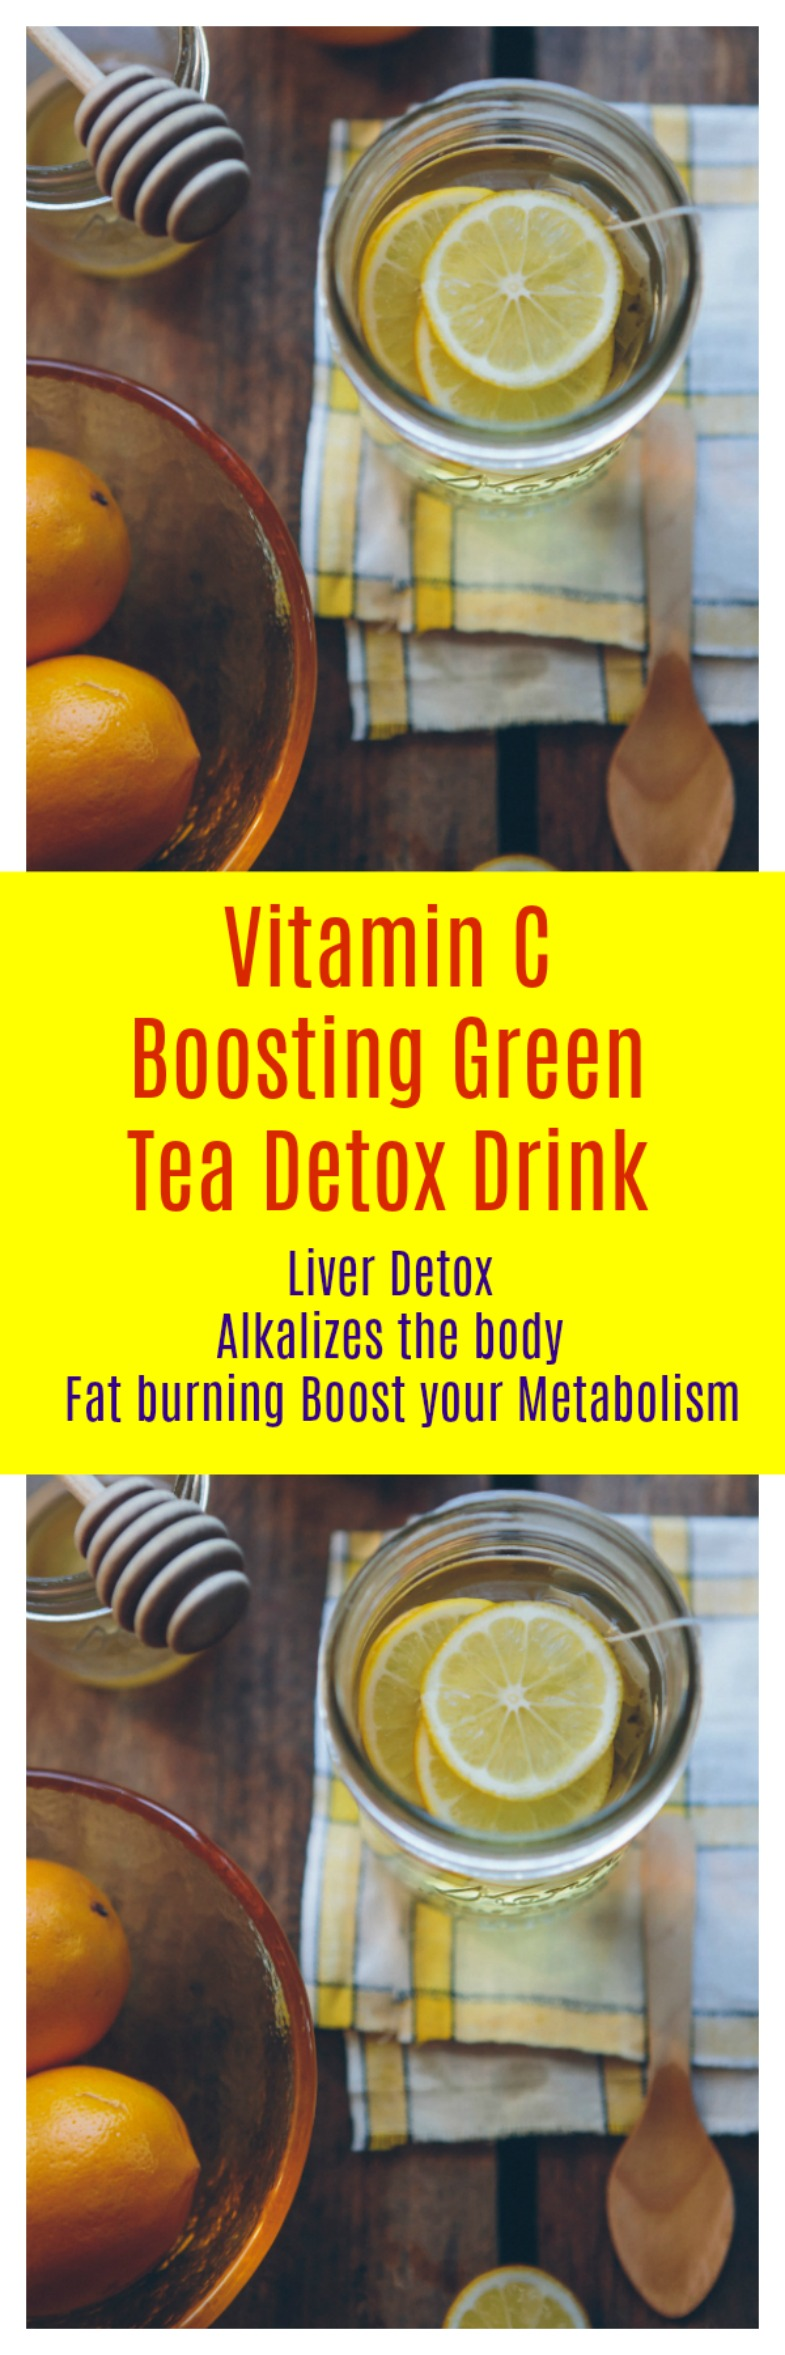 Vitamin C Boosting Green Tea Detox Drink is great for your overall health and it is loaded with antioxidants that you need each day.